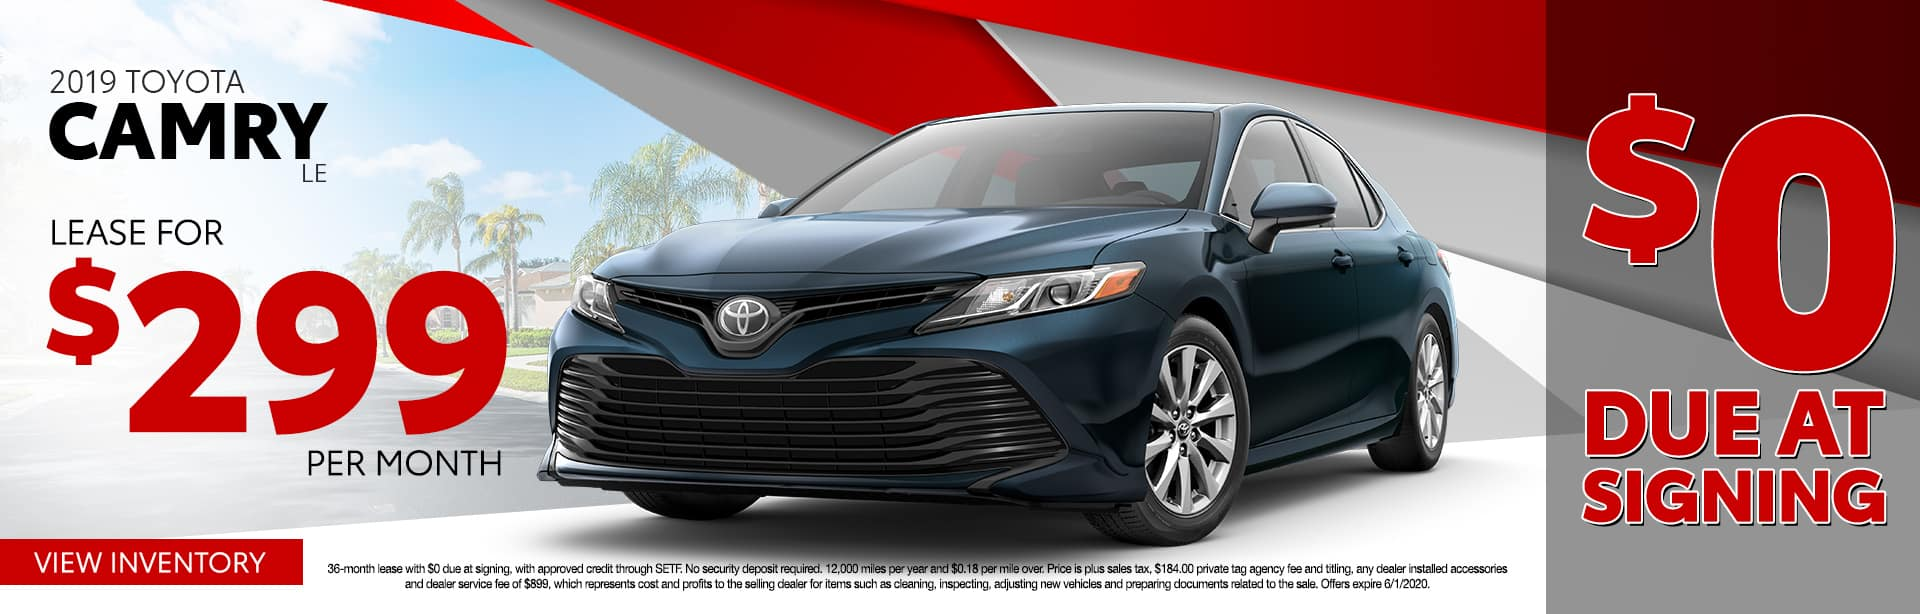 2019 Toyota Camry LE | Lease For $299 Per Month $0 Due At Signing